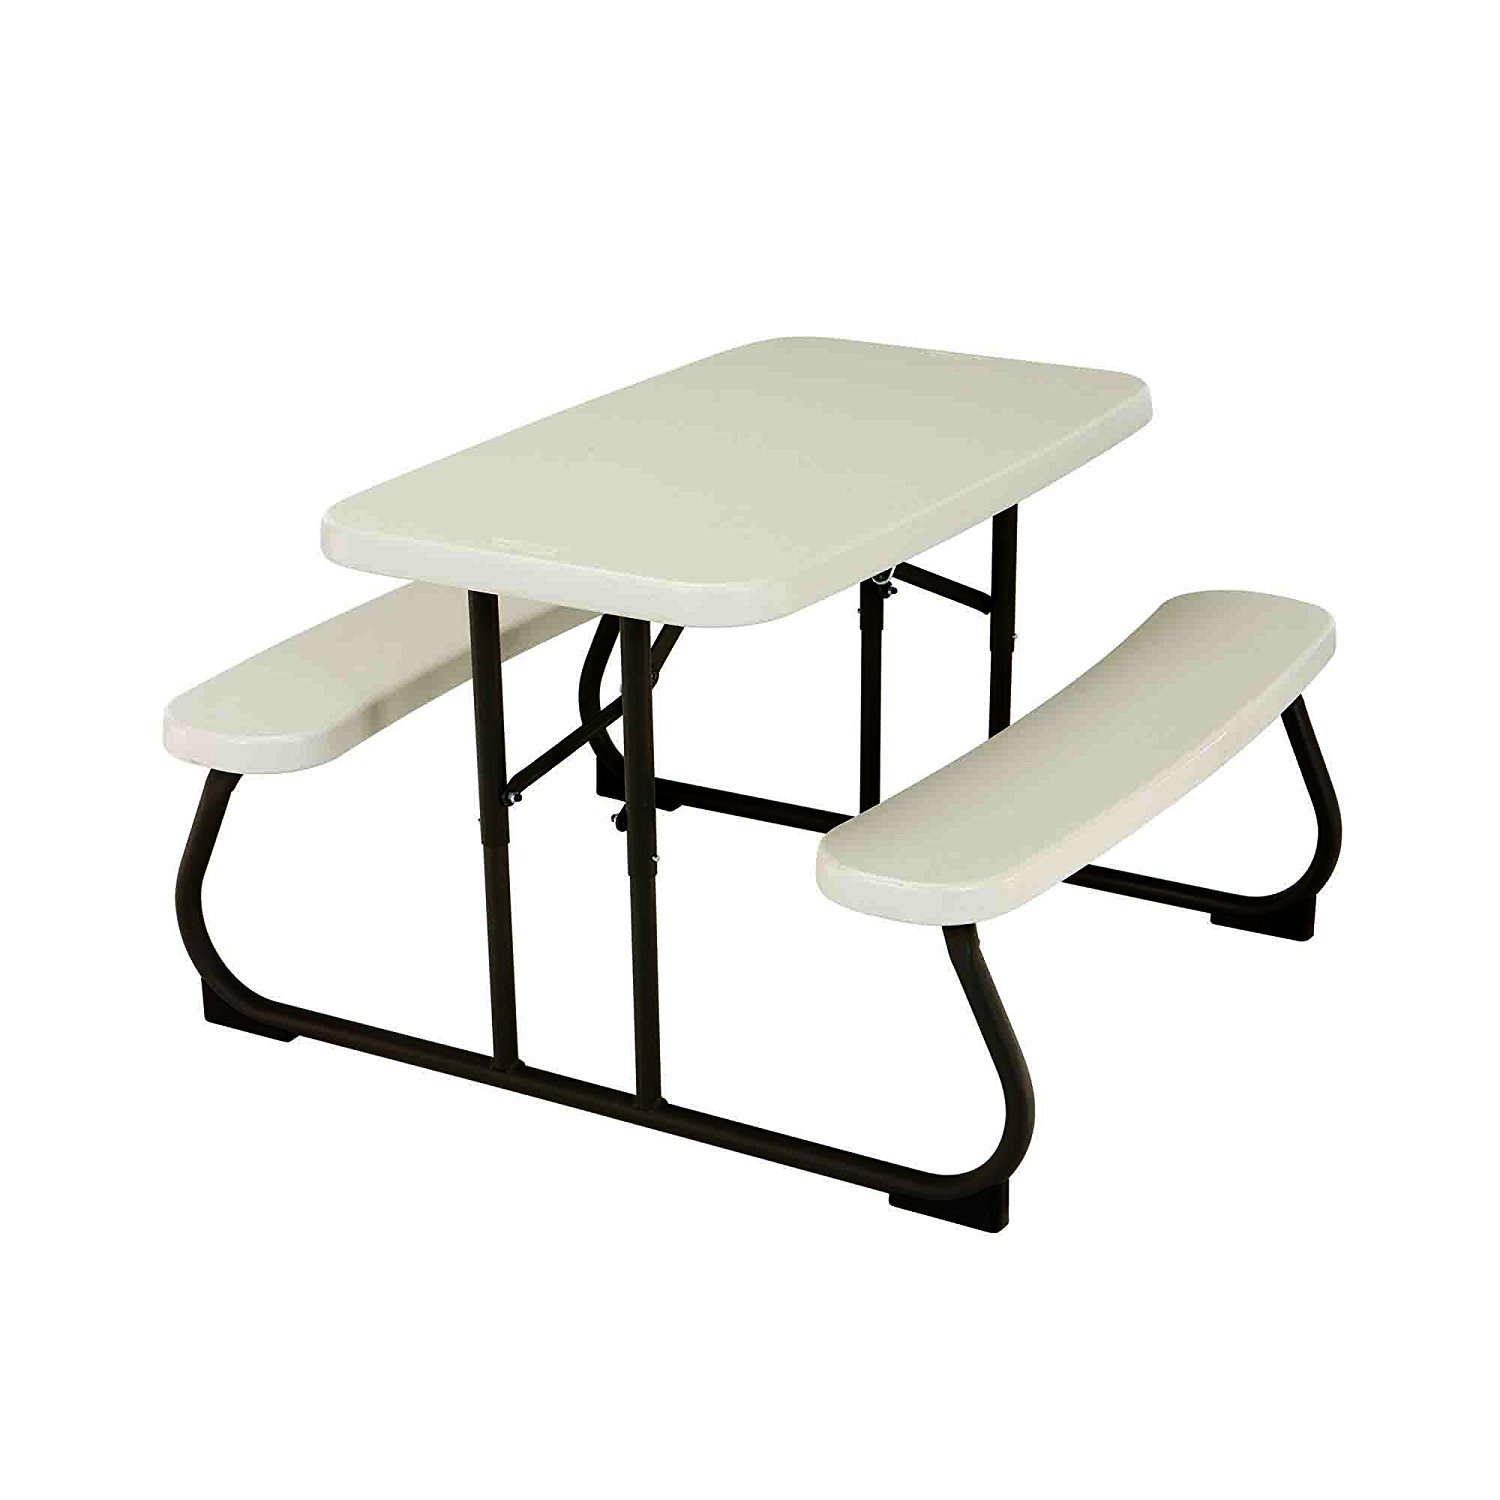 280094 Kid's Picnic Table (Premium pack) by Lifetime. (Image #1)